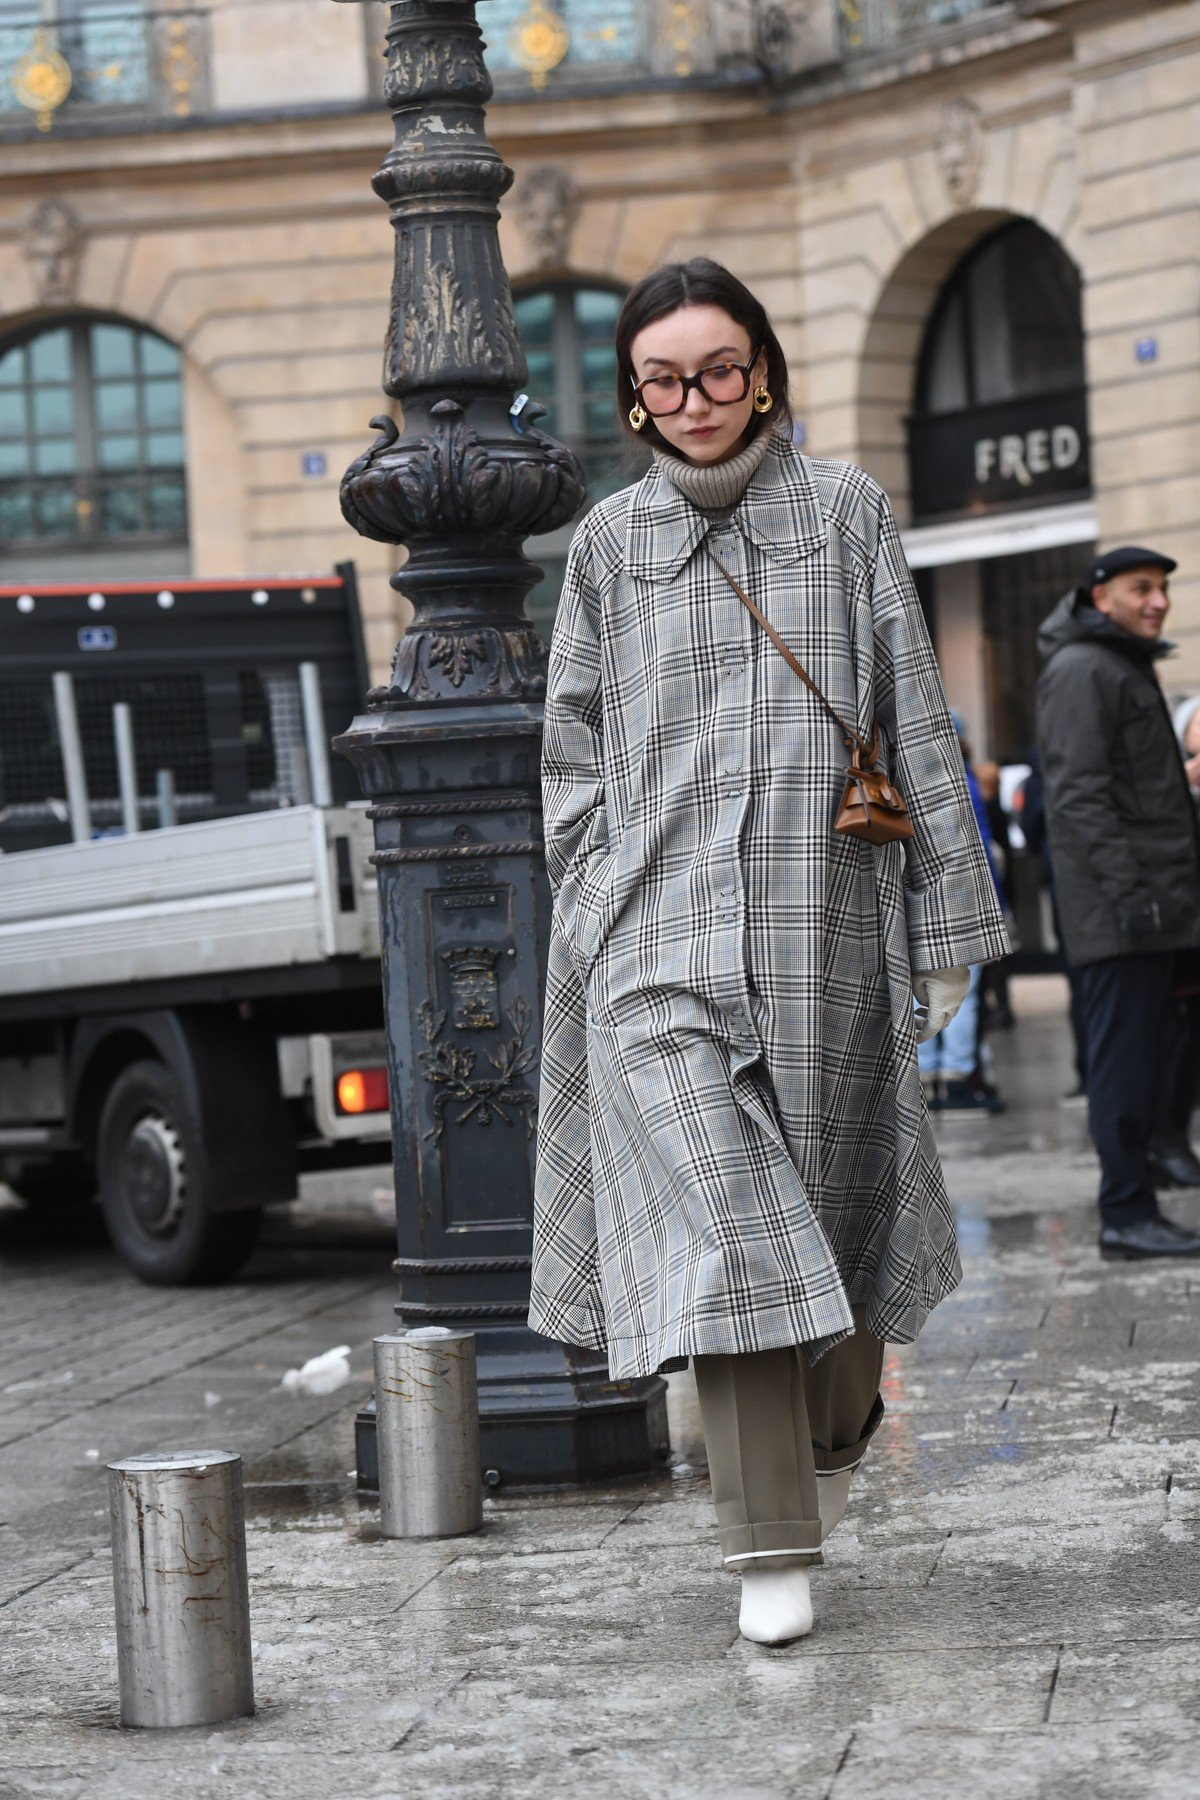 Street Style Street Style, Spring Summer 2019, Haute Couture Fashion Week, Paris,  France - 22 Jan 2019, Image: 409471197, License: Rights-managed, Restrictions: , Model Release: no, Credit line: Profimedia, TEMP Rex Features